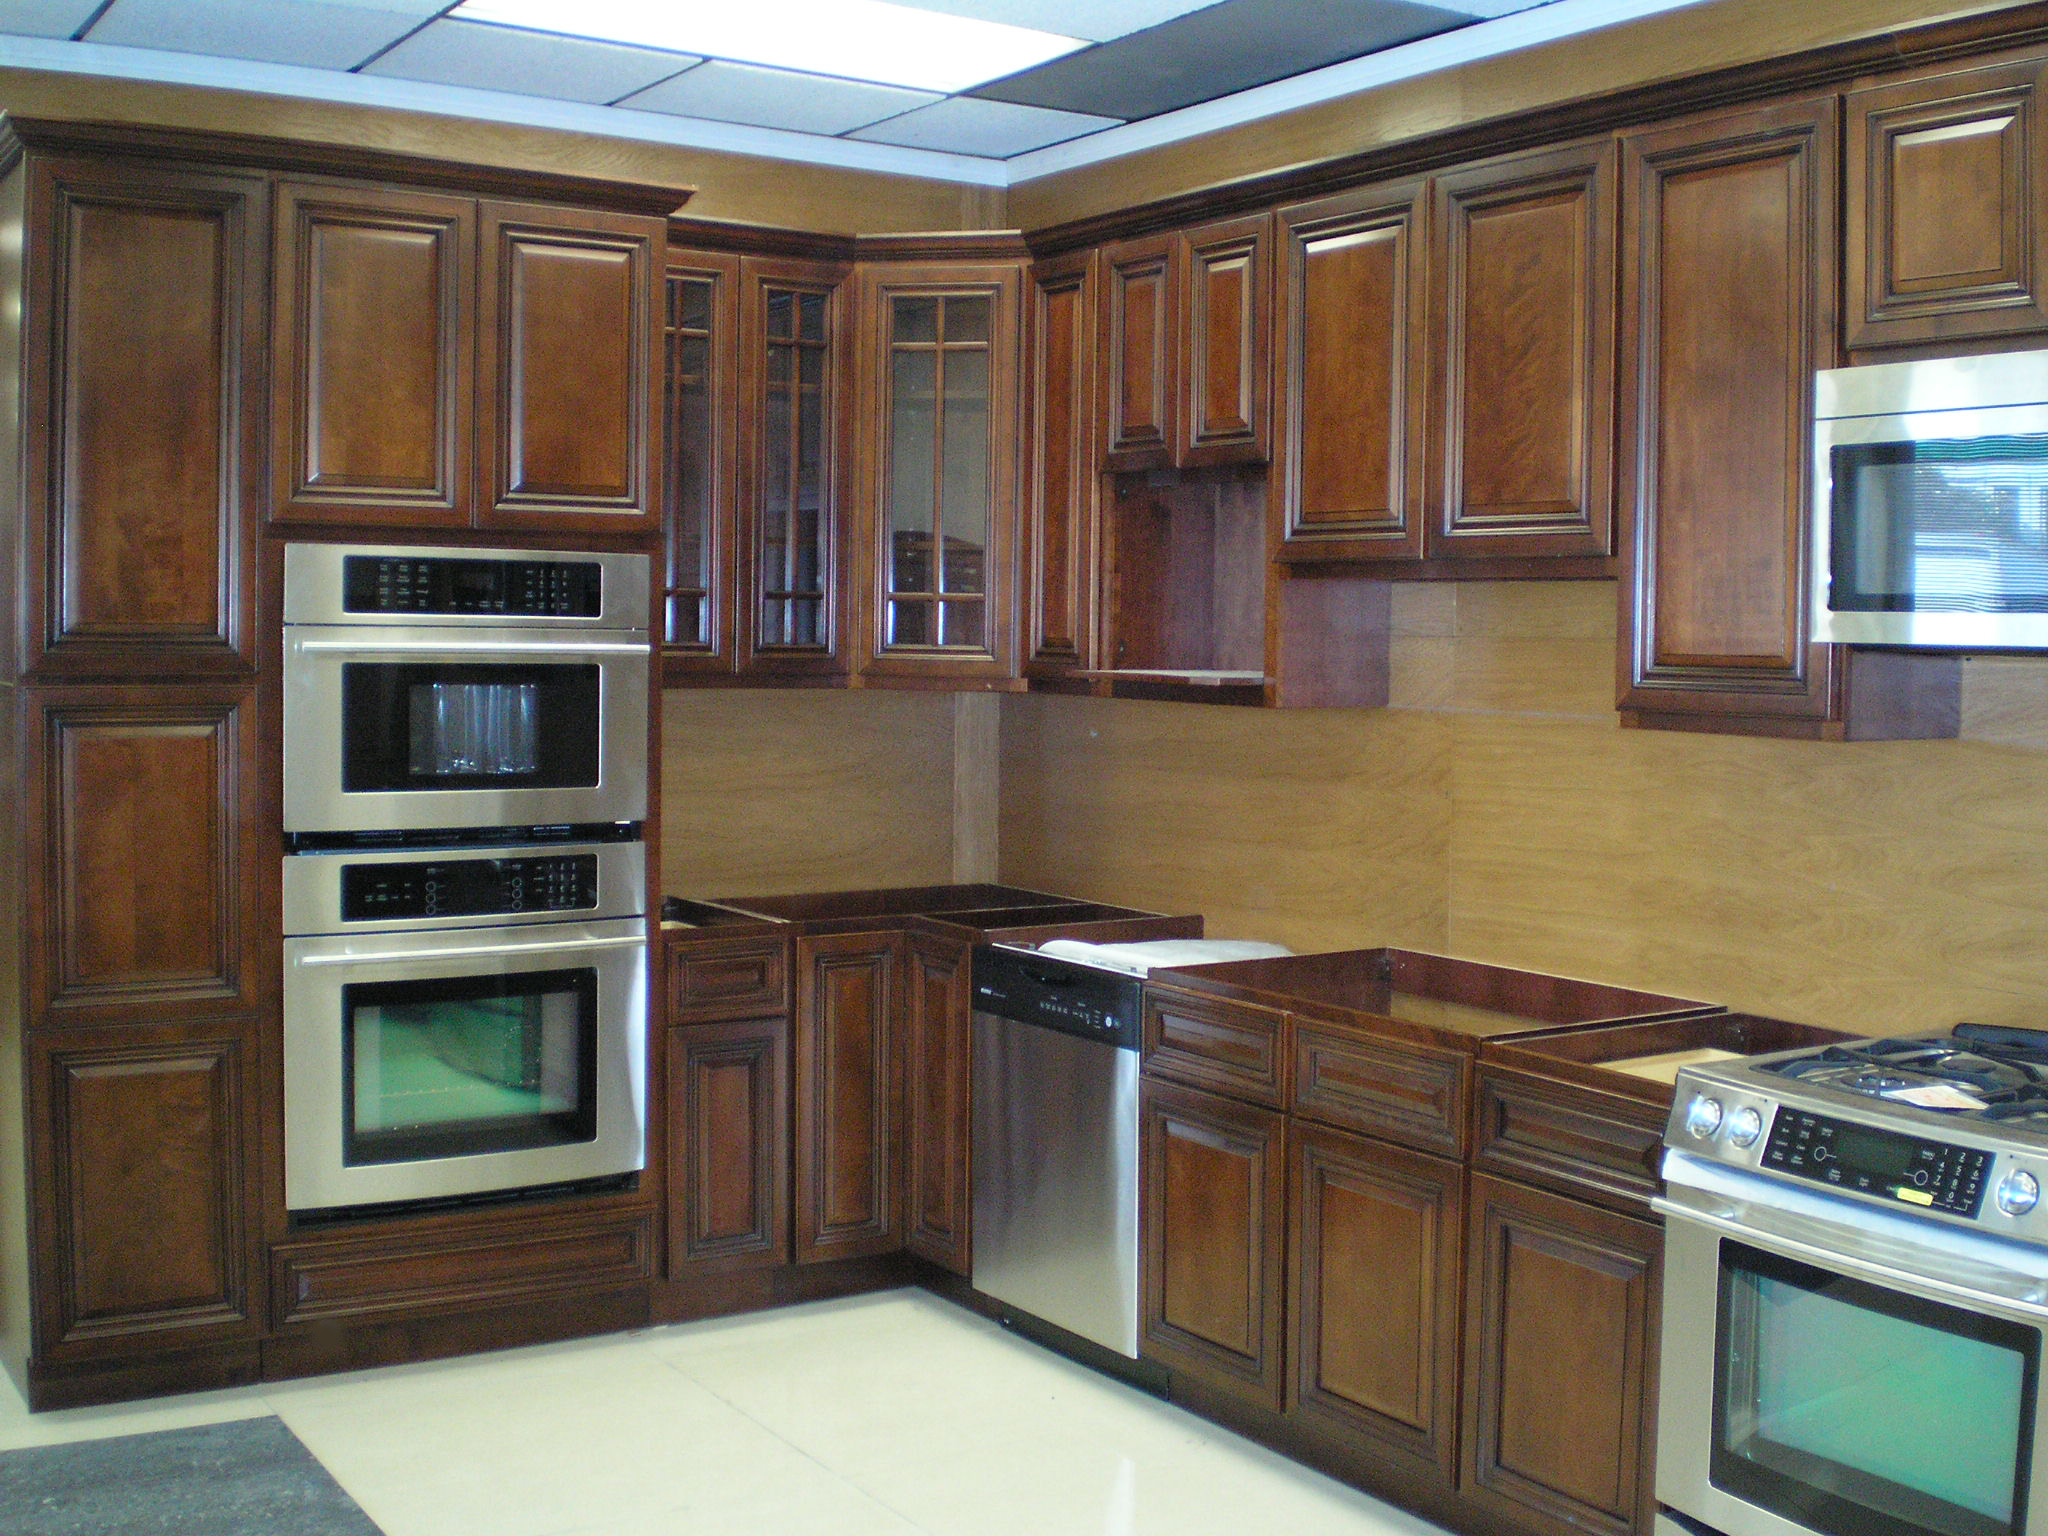 Exotic Walnut Kitchen Cabinets – Solid Wood Kitchen Cabinetry